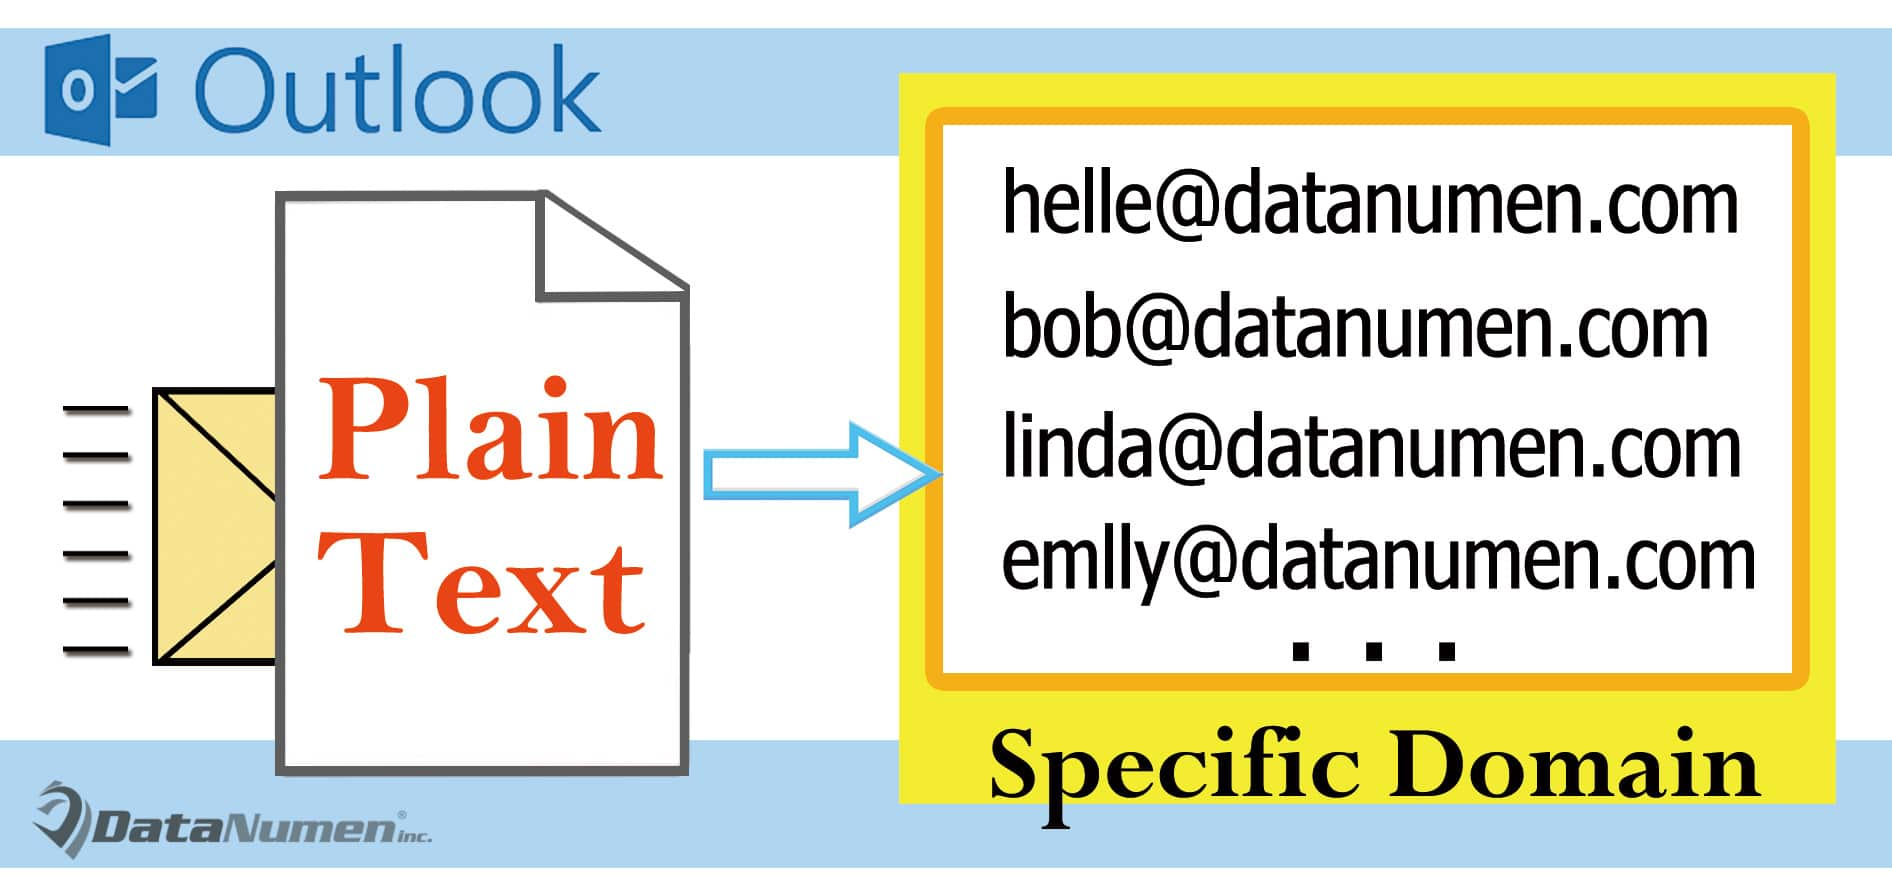 Send Plain Text Emails Only to Those in a Specific Domain via Outlook VBA